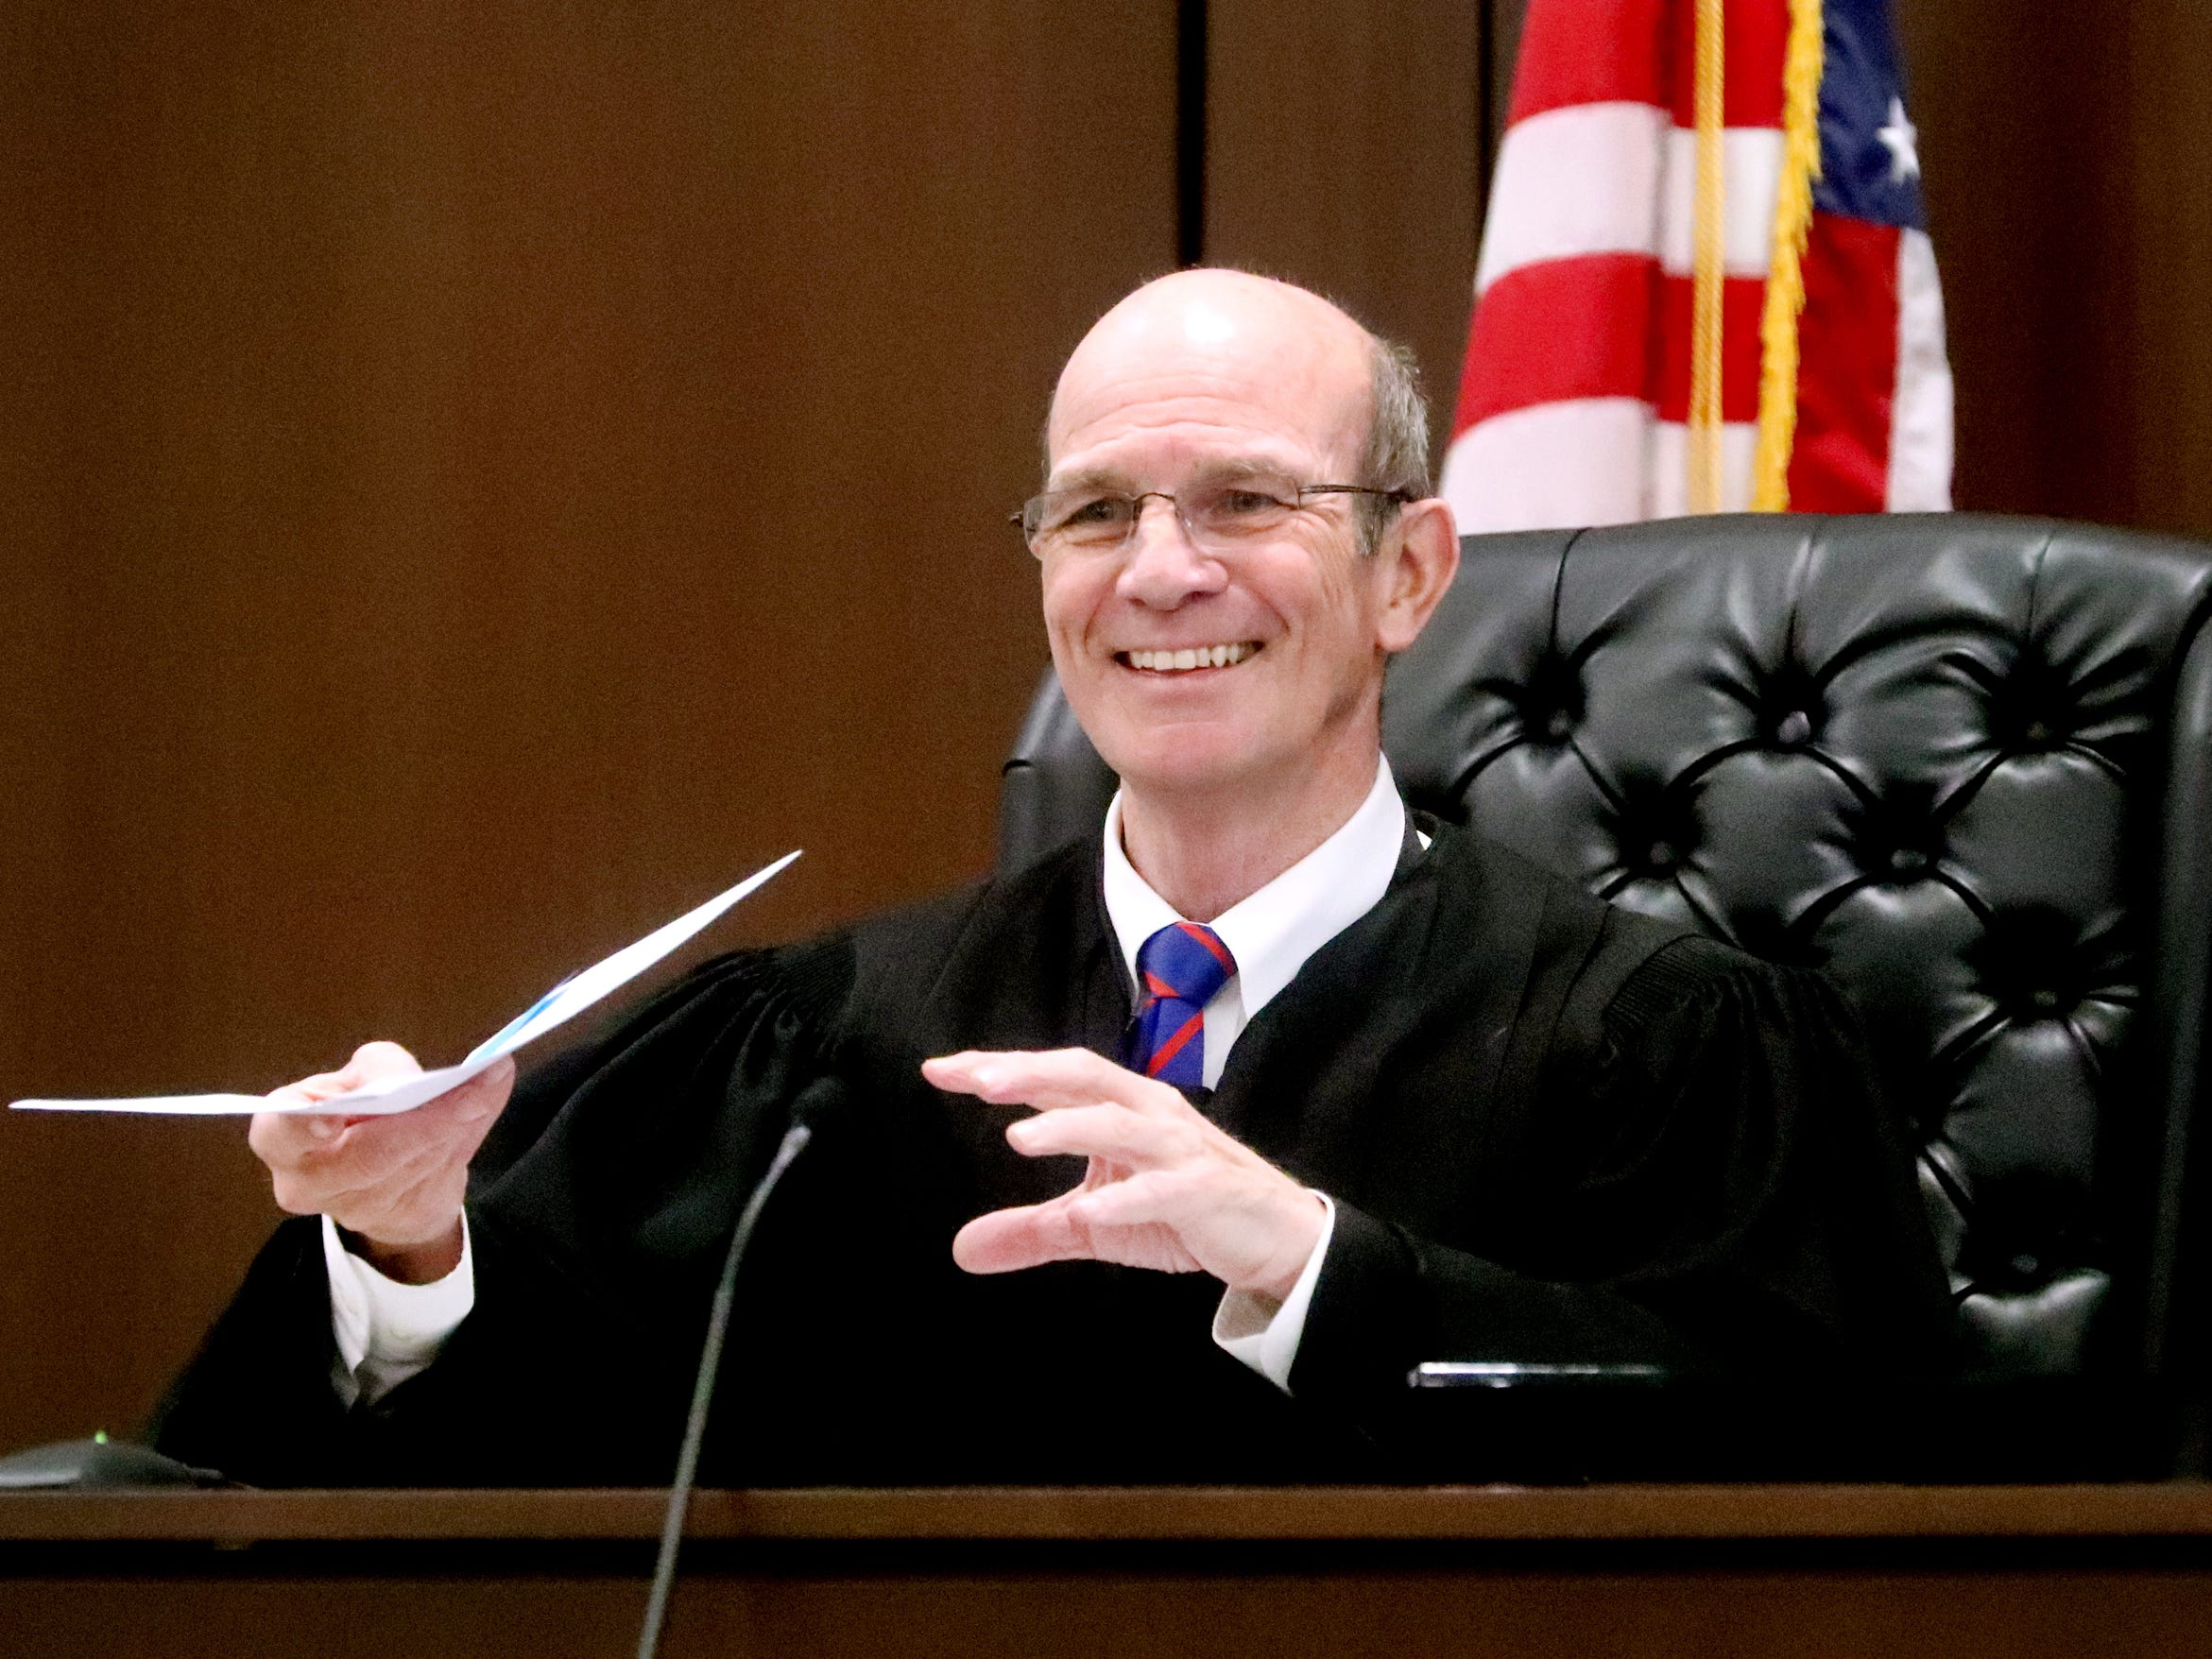 Judge Ben Hall McFarlin Jr. fills in for Judge Barry Tidwell during Mental Health Court on Friday, Feb. 22, 2019.  After the docket, a two year anniversary celebration was held to celebrate the success of the Mental Health Court program.